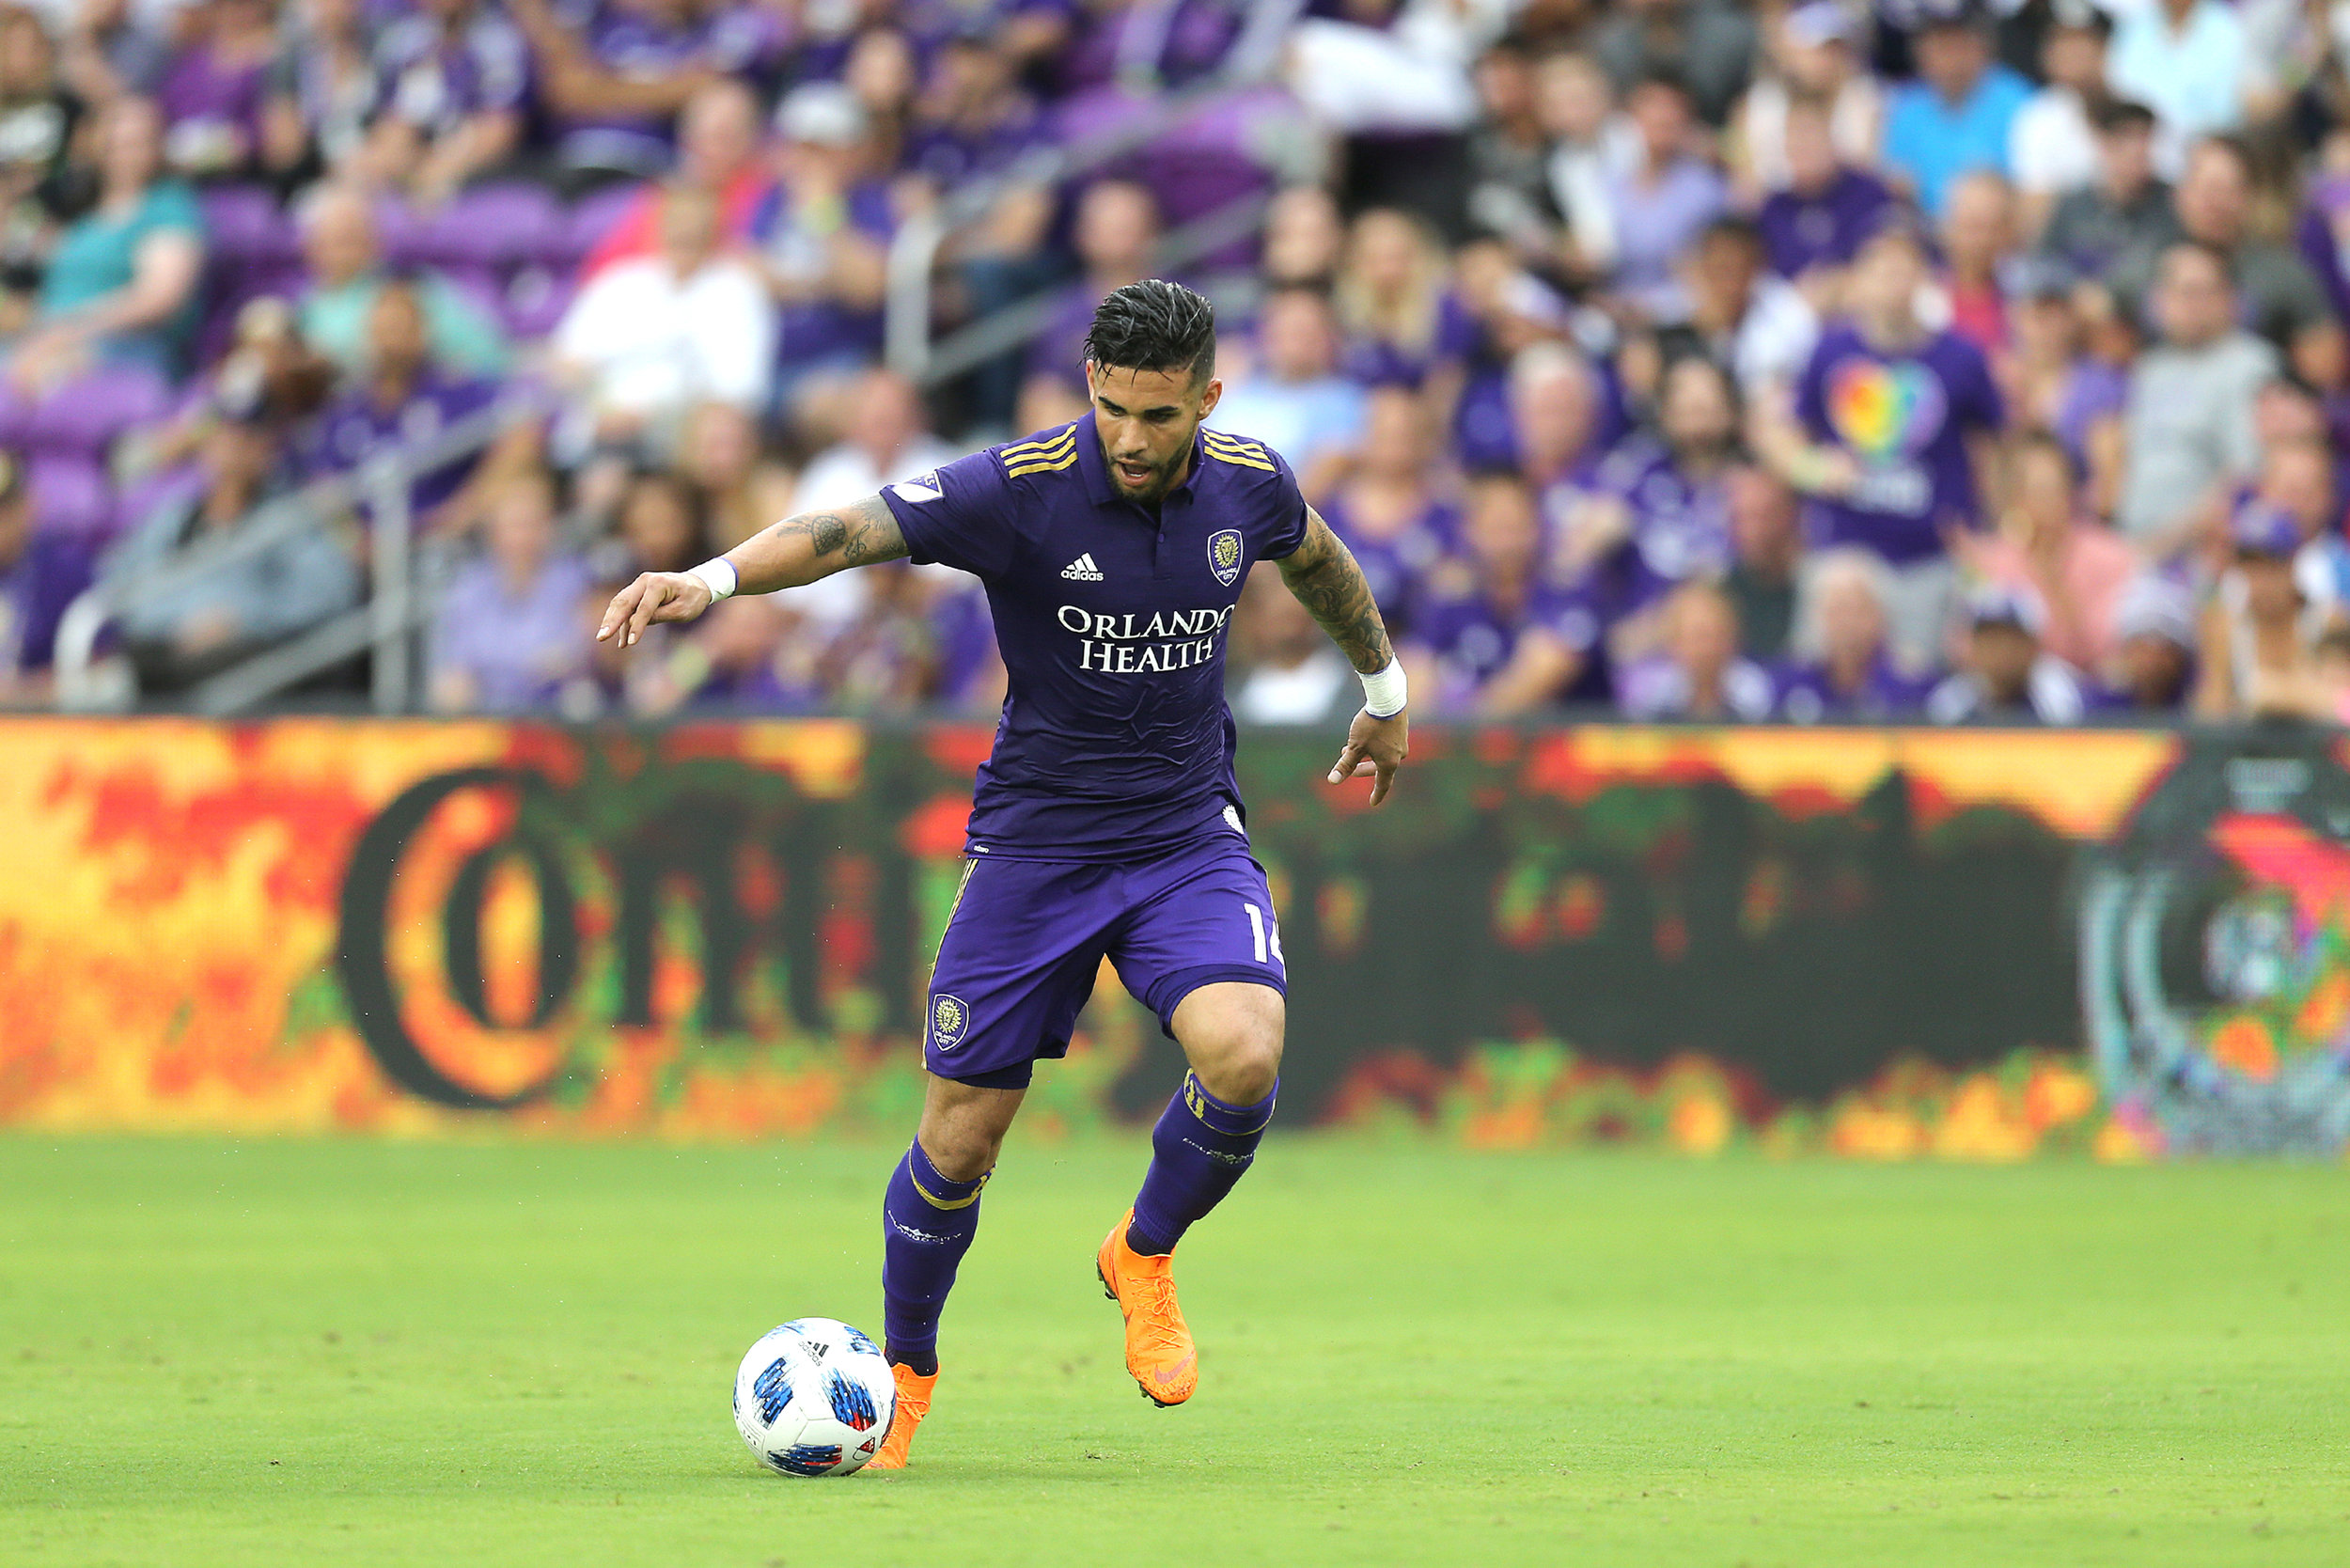 Real Salt Lake v Orlando City SC11.JPG